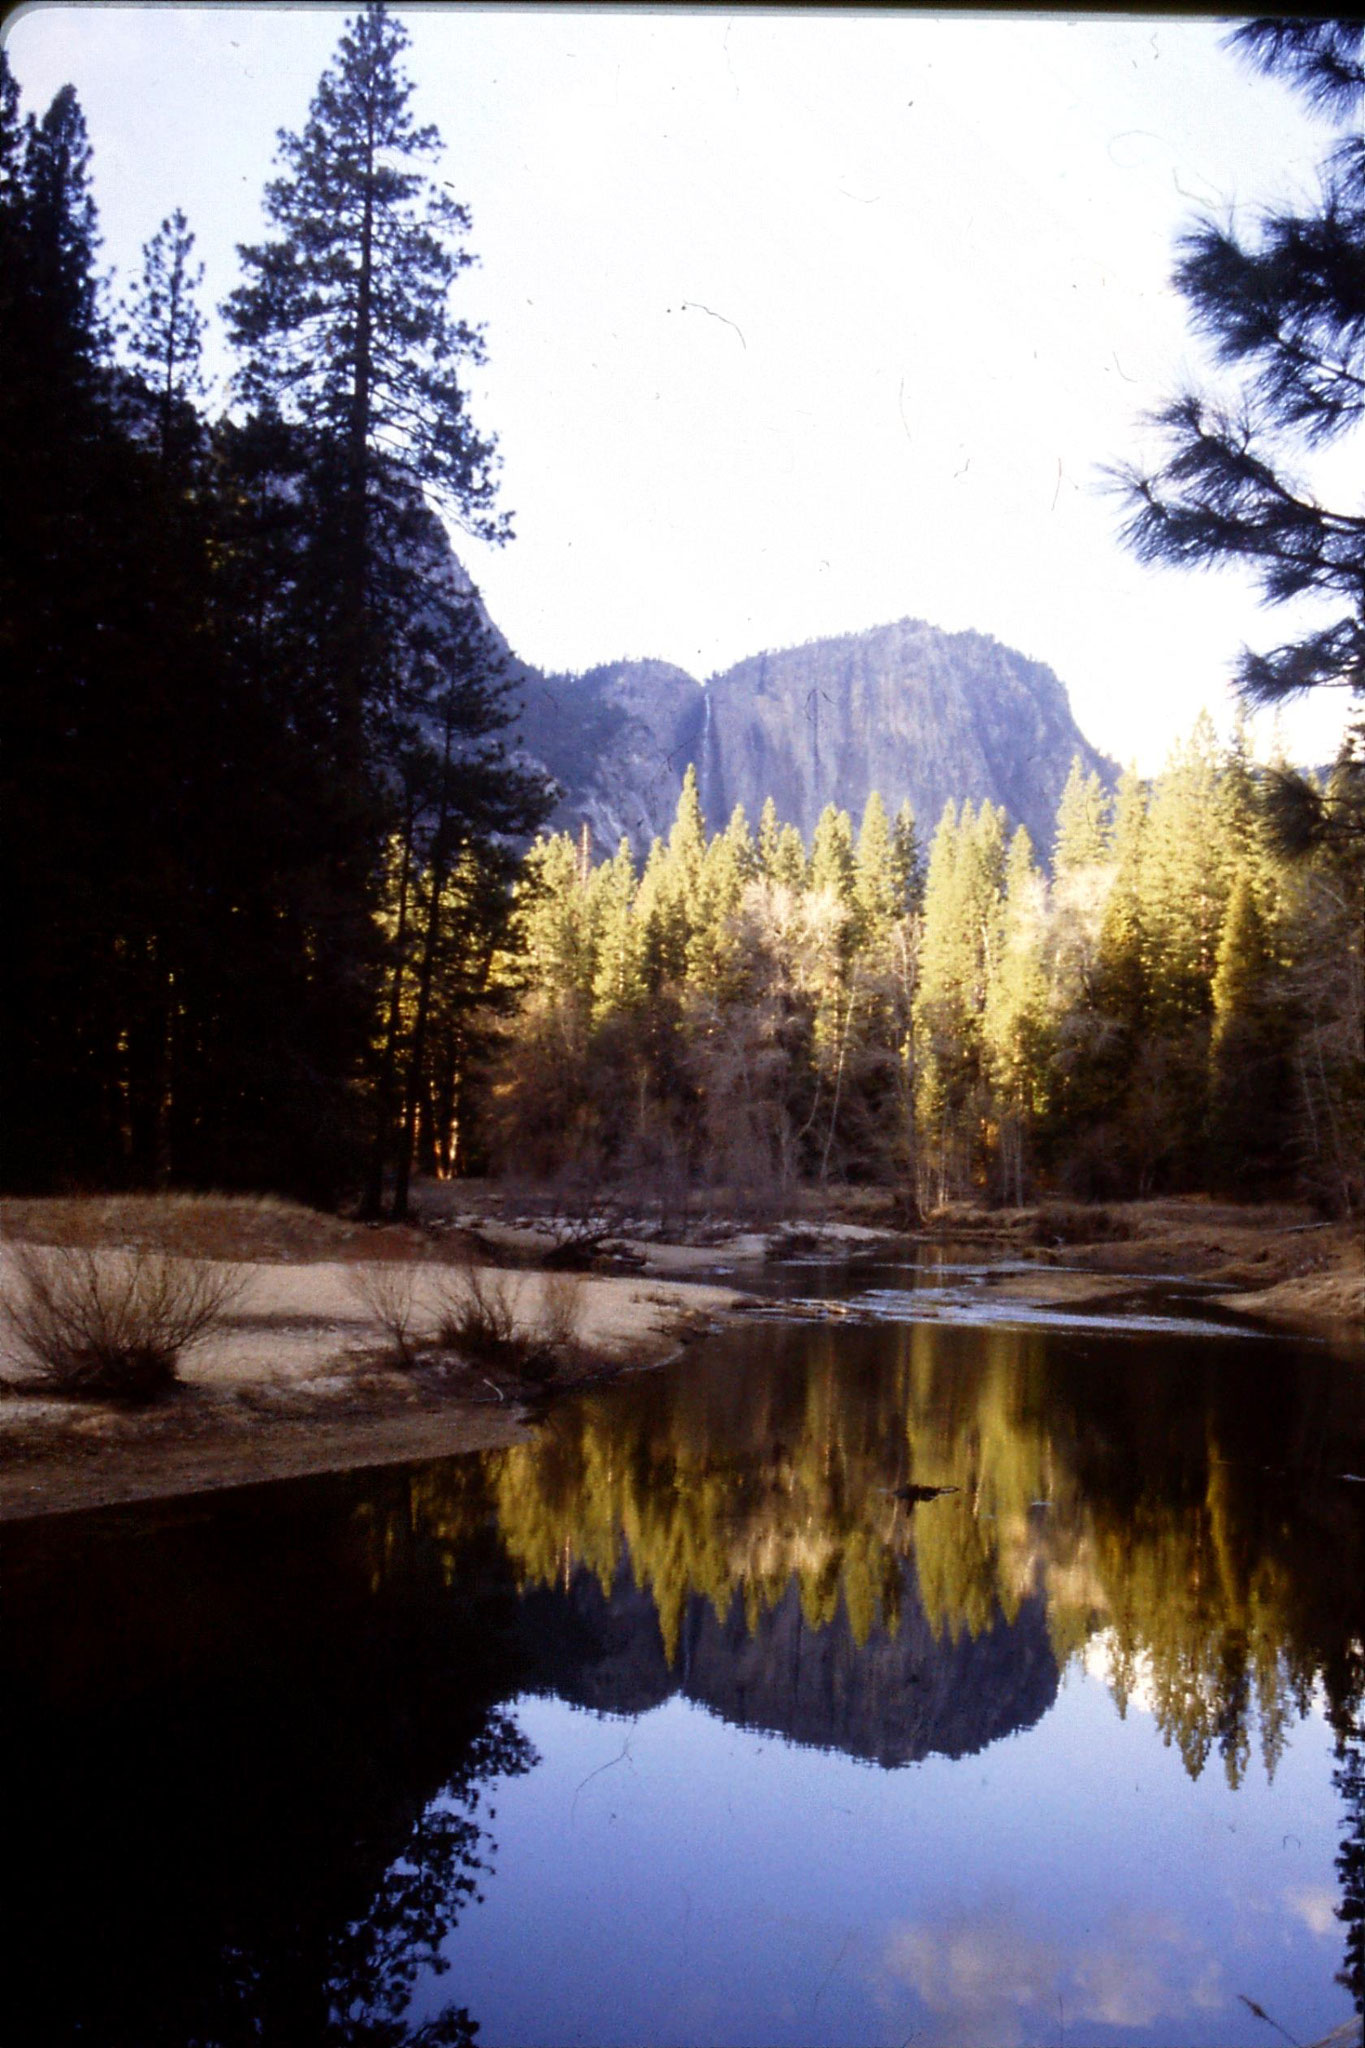 16/2/1991: 23: Yosemite valley